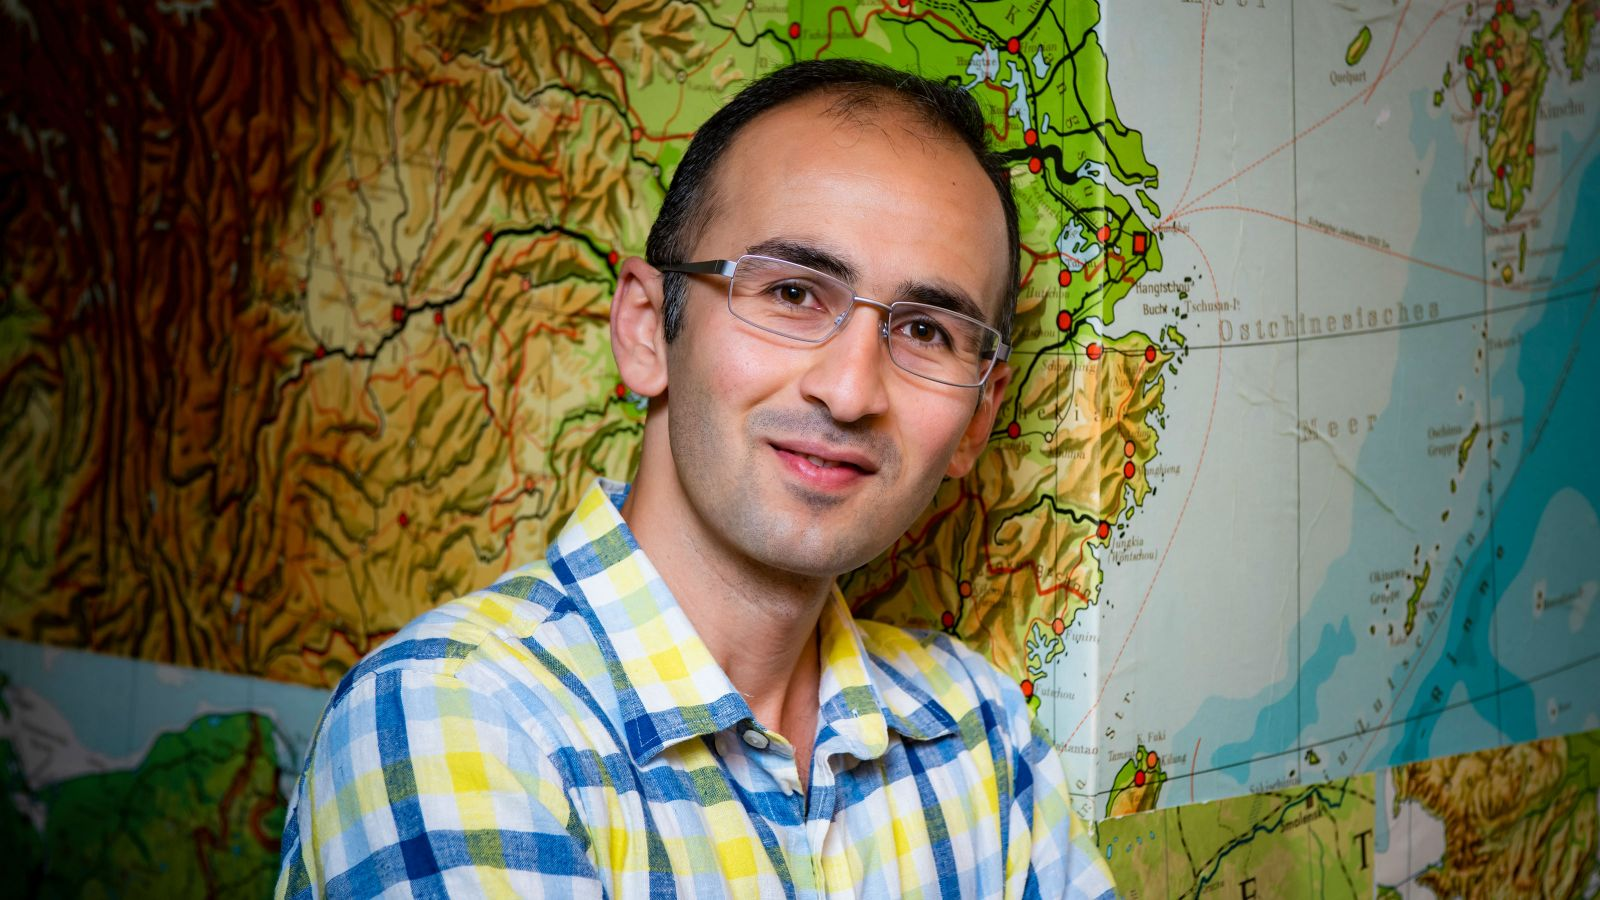 Omid leans against the wall and looks at the camera. The wall paper is a world map.